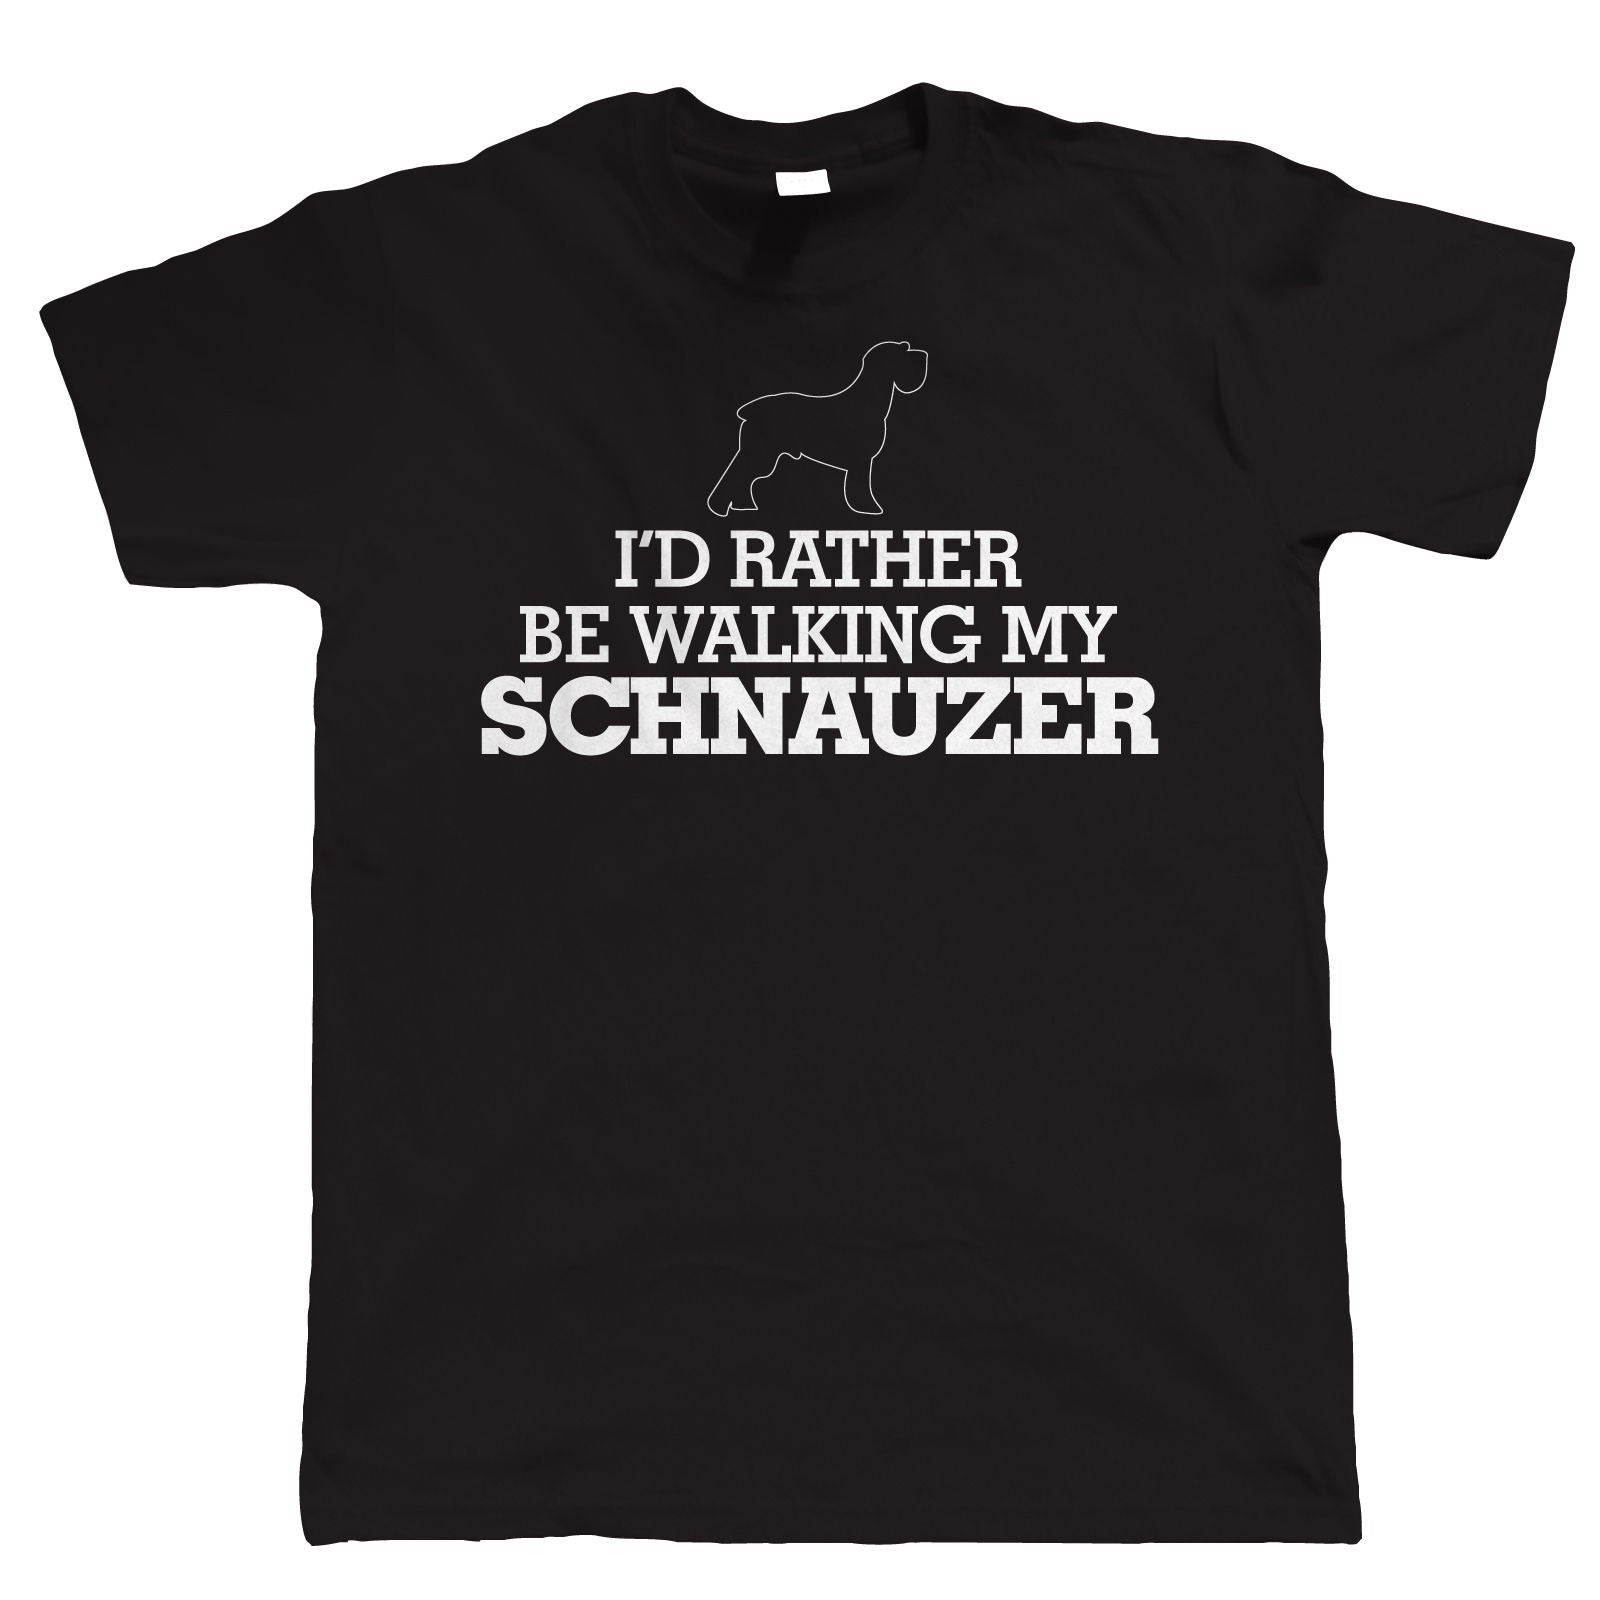 I'd Rather Be Walking My Schnauzer, Mens Funny Tshirt